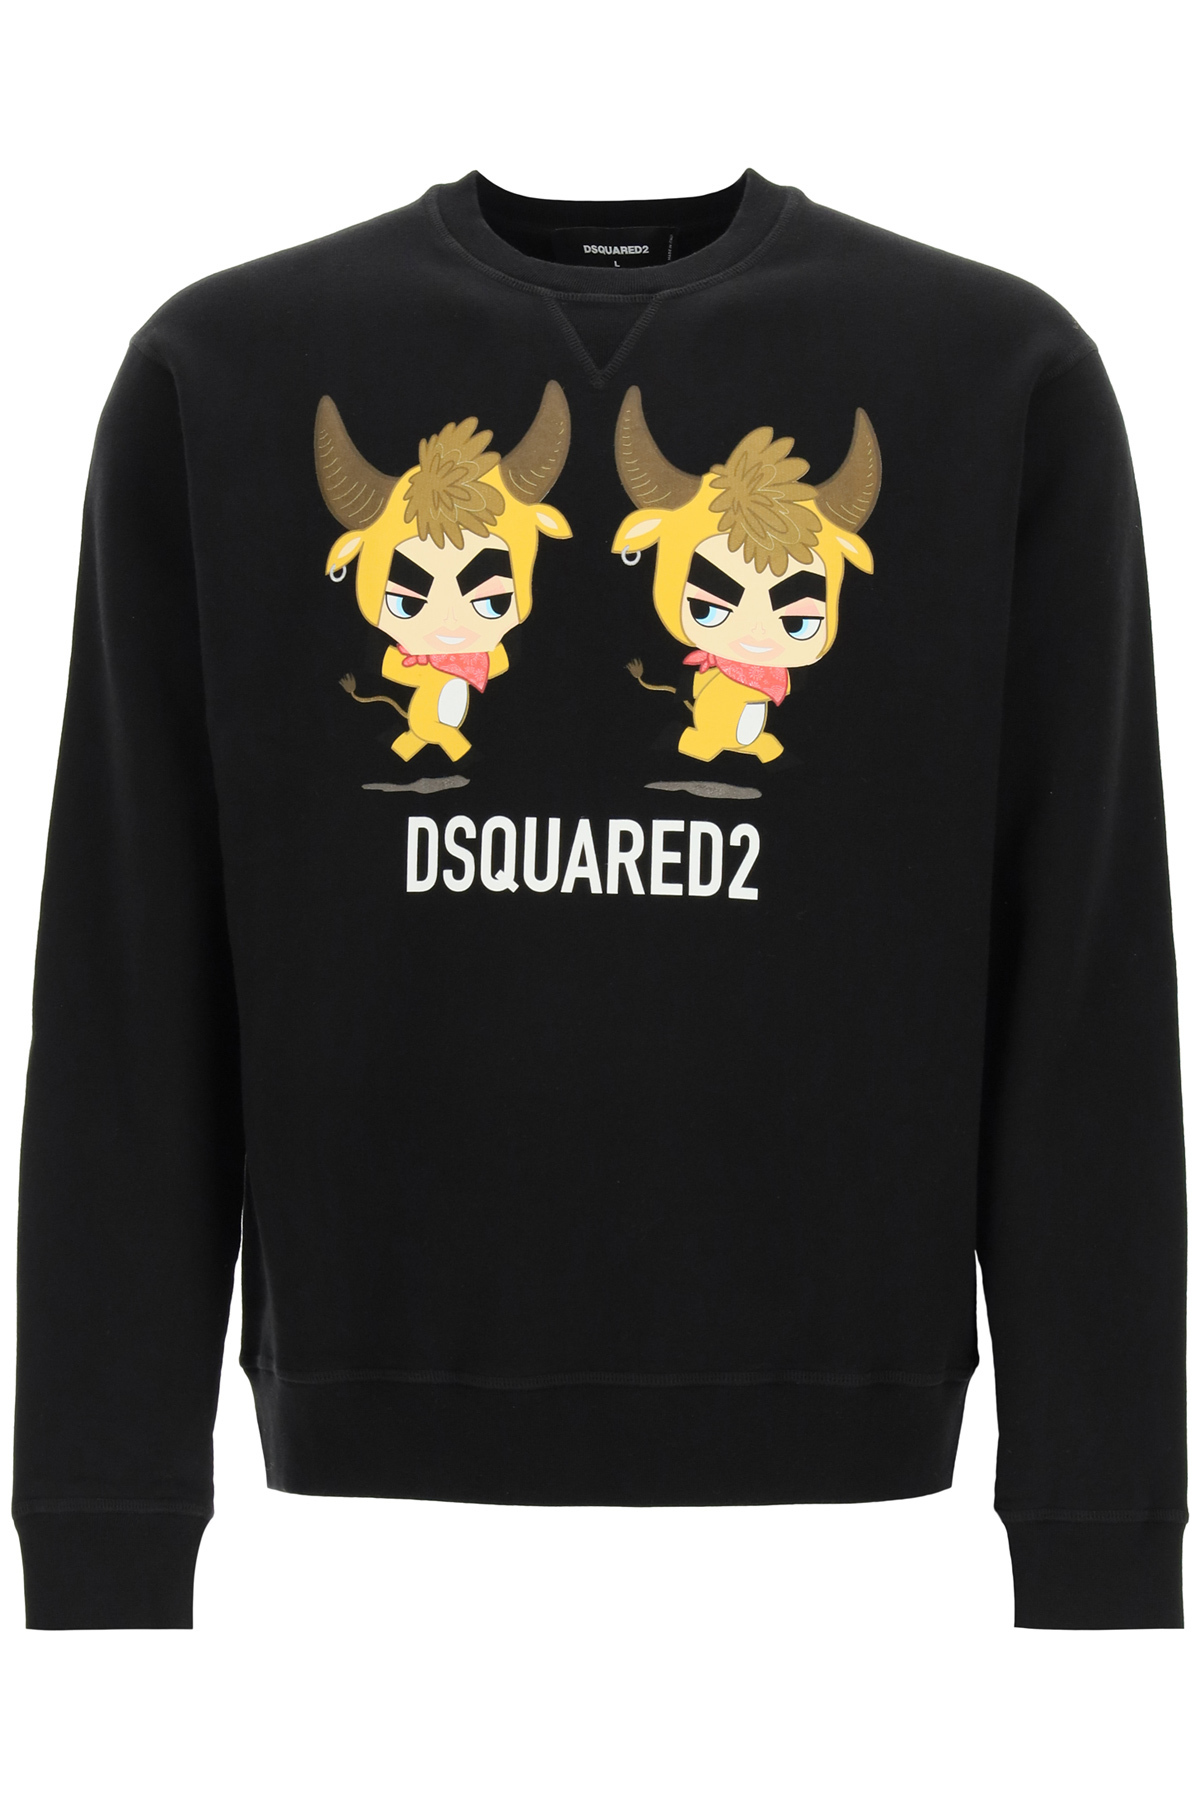 Dsquared2 Clothing CREWNECK SWEATSHIRT WITH YEAR OF THE OX PRINT